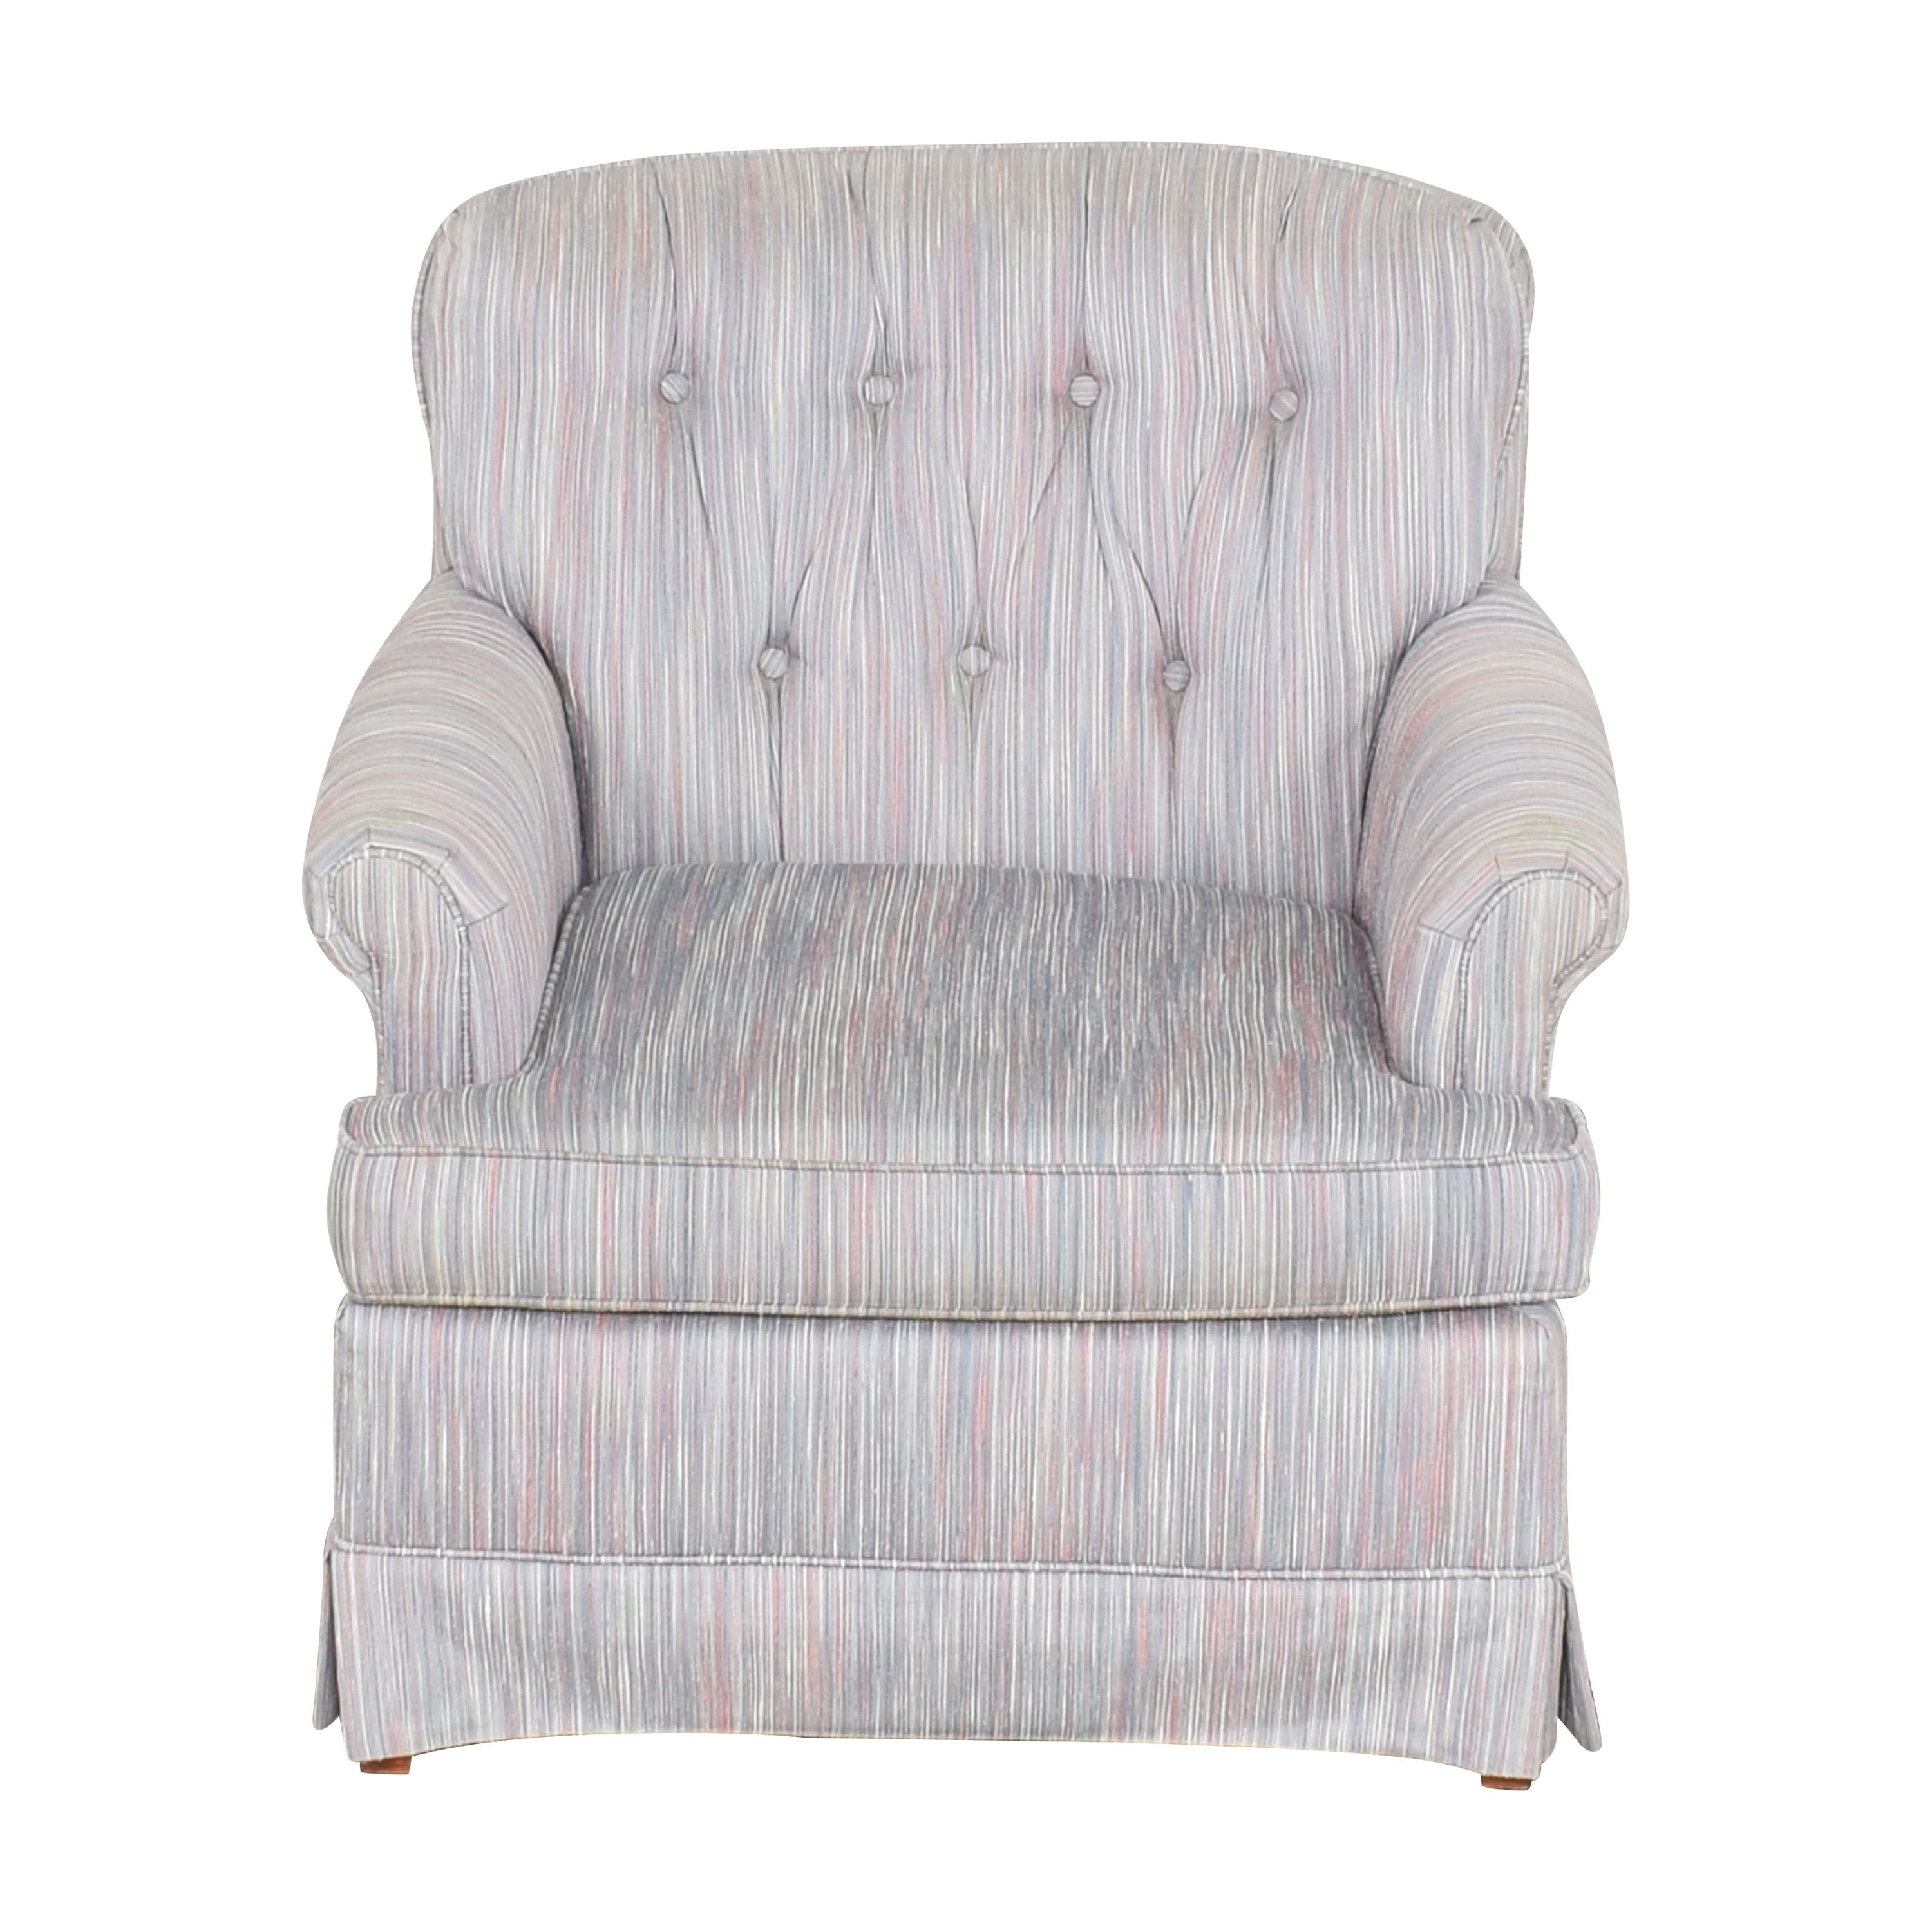 buy Hickory-Fry Tufted Accent Chair Hickory-Fry Chairs